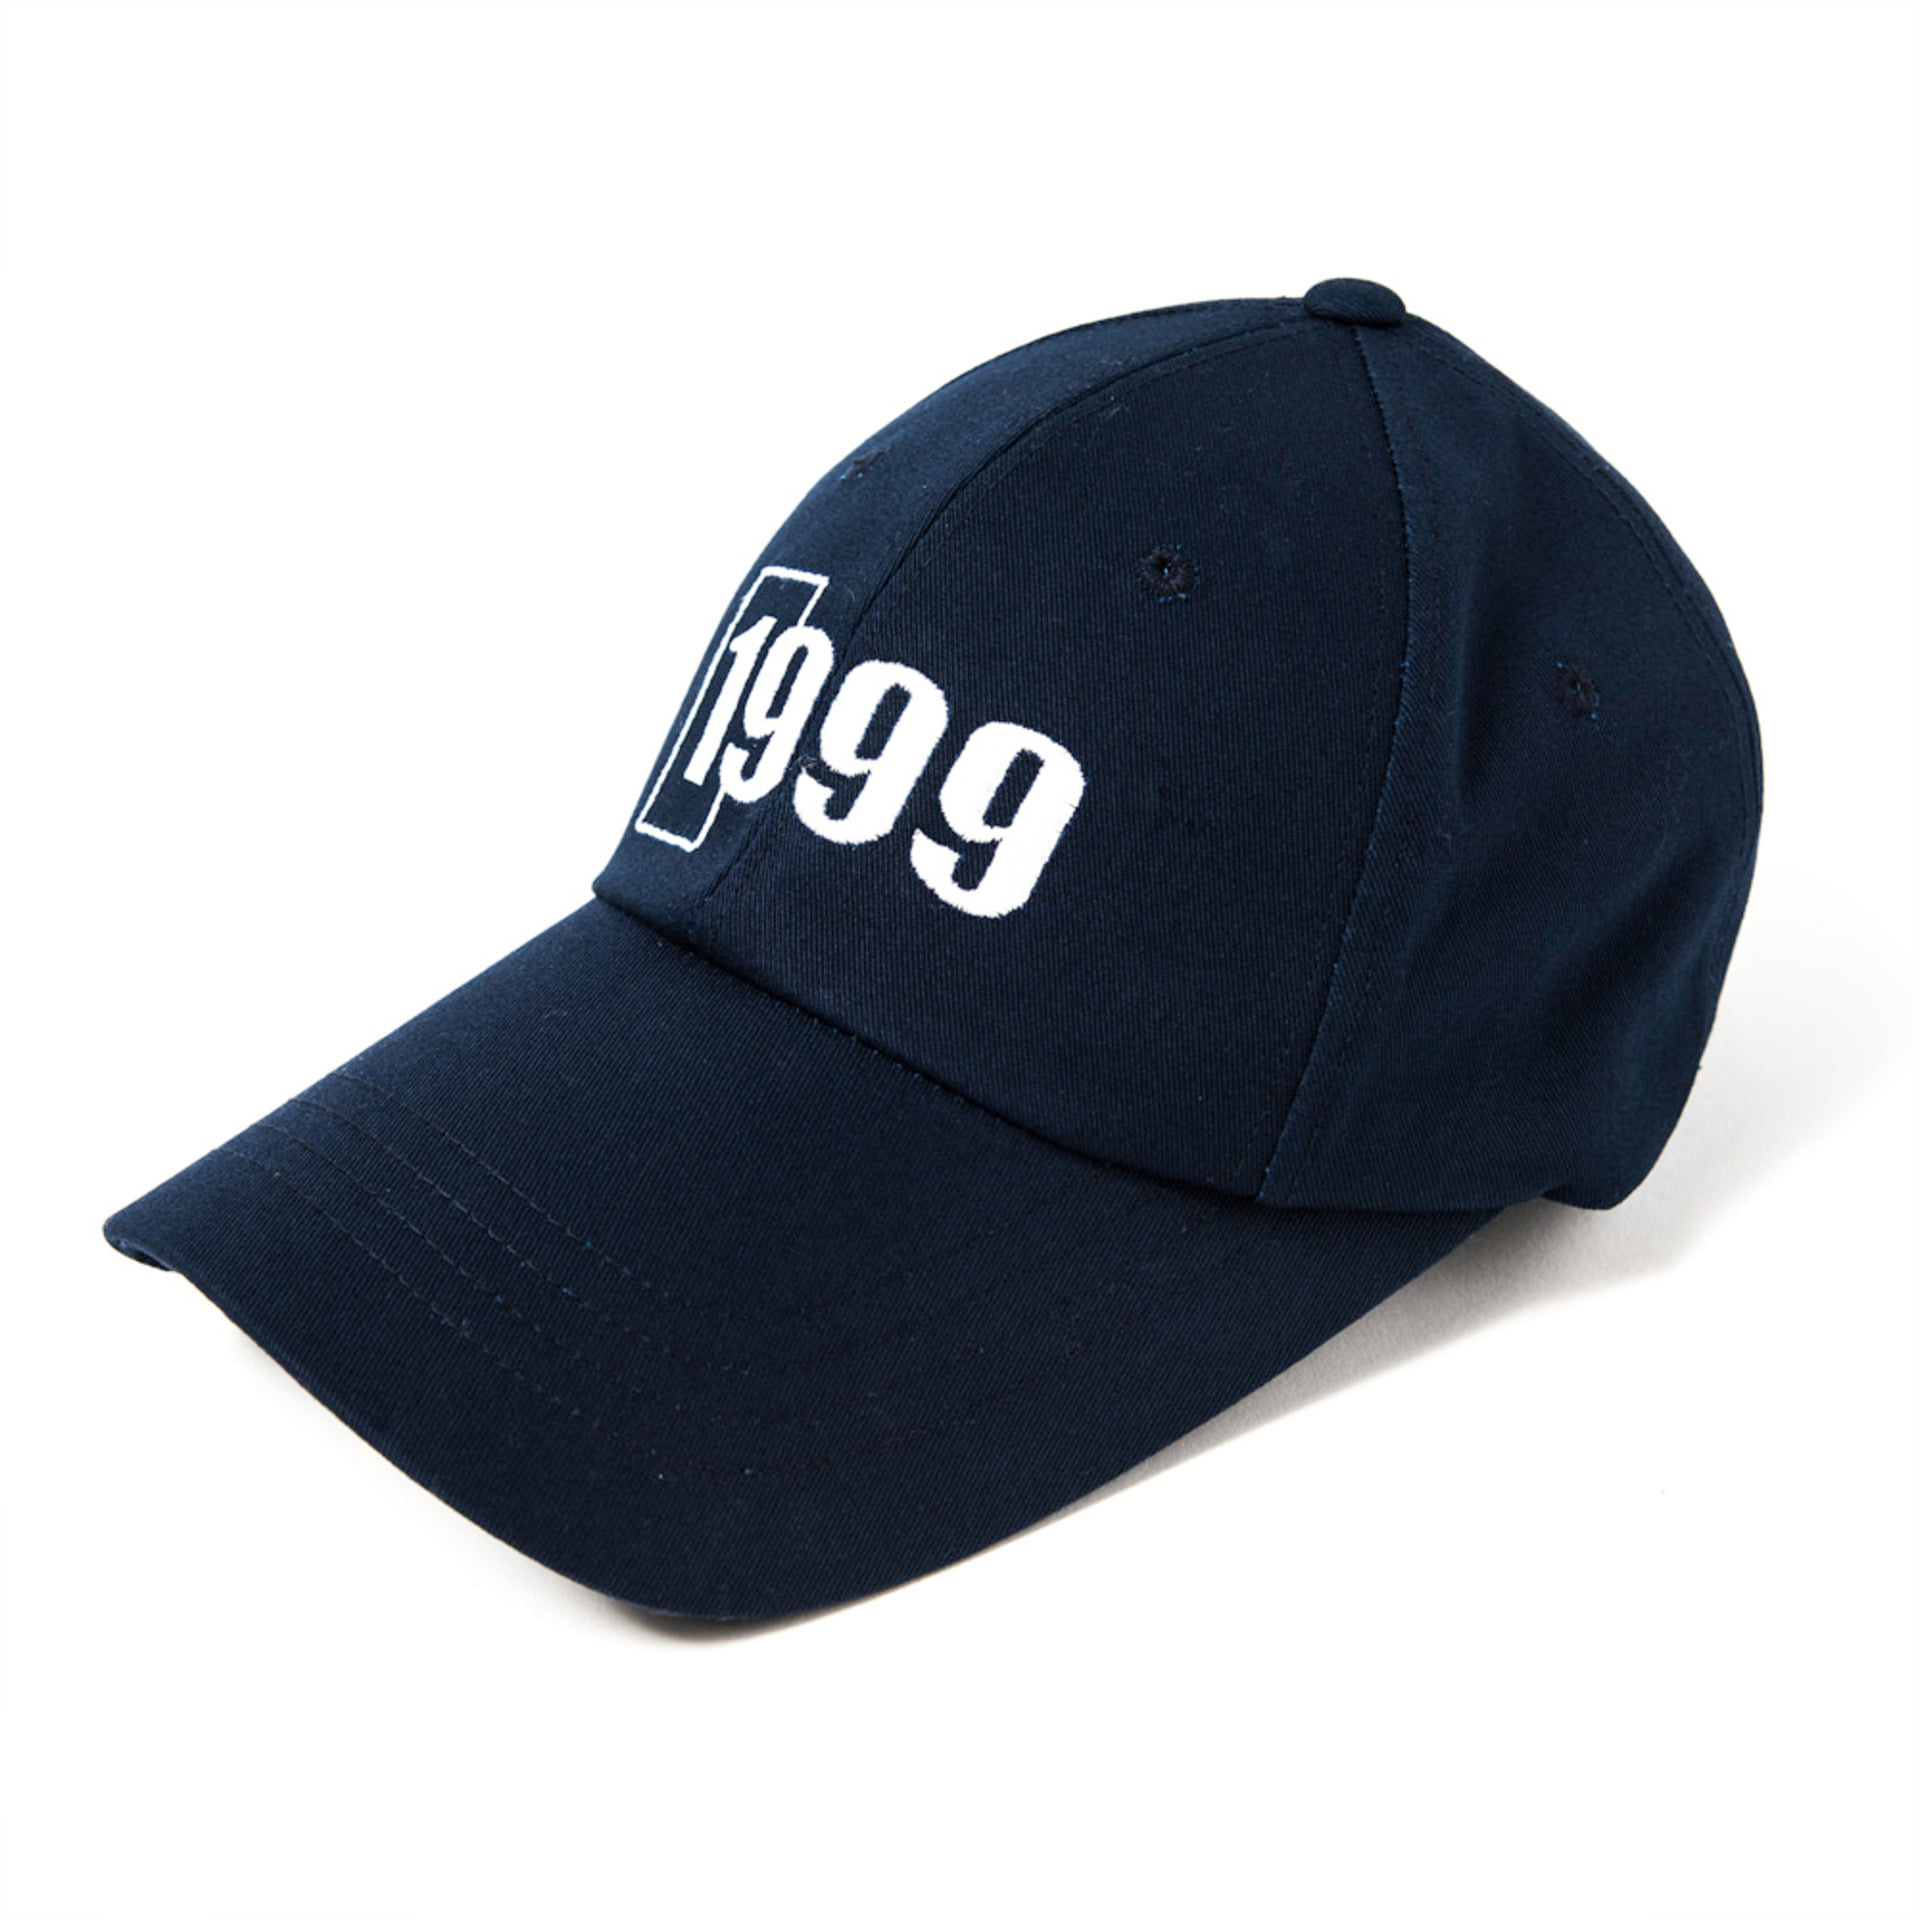 Triple Nine 1999 CAP NAVY